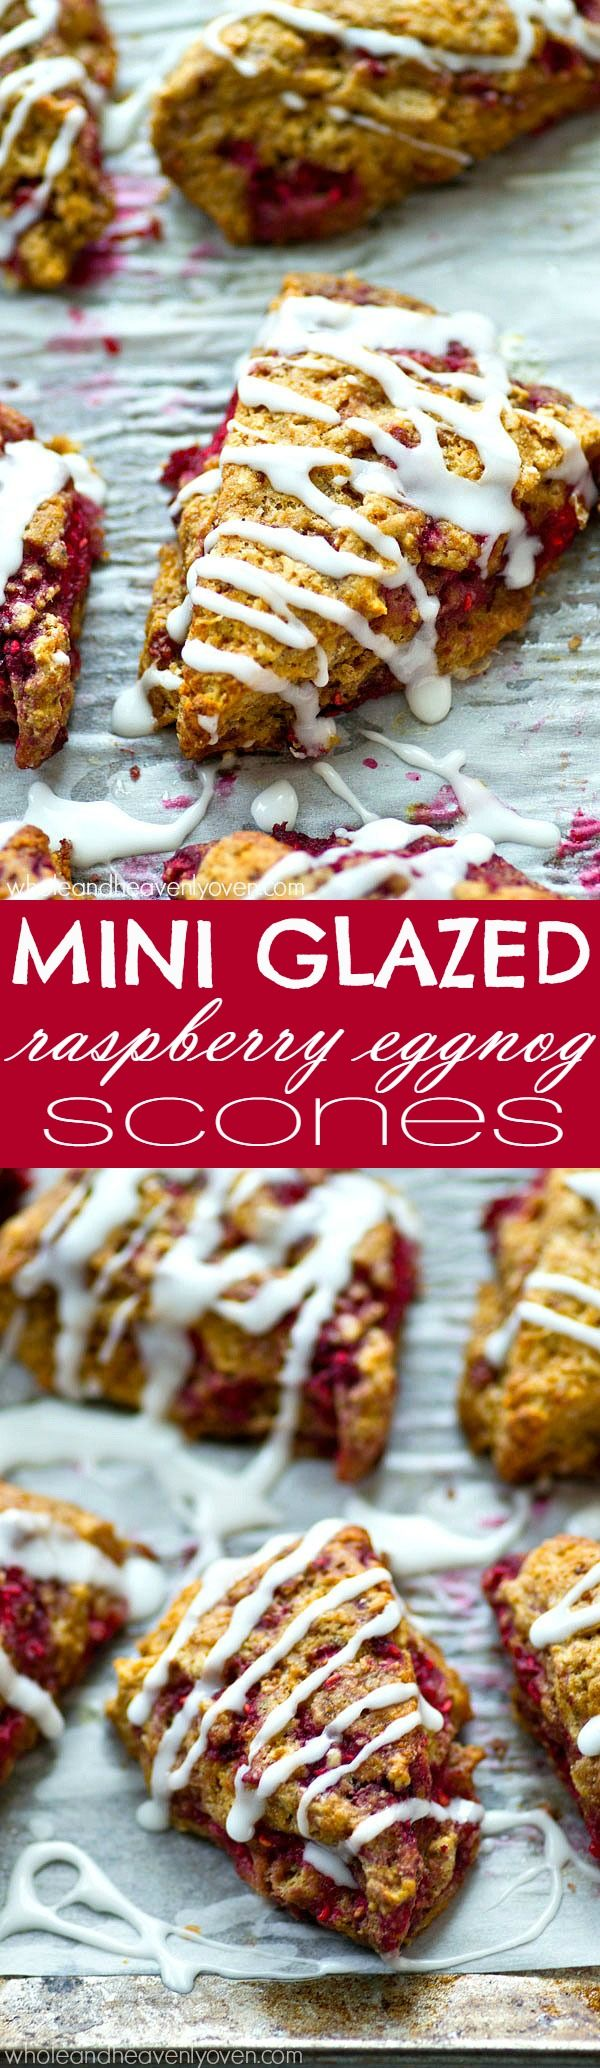 Mini Glazed Raspberry Eggnog Scones | Recipe